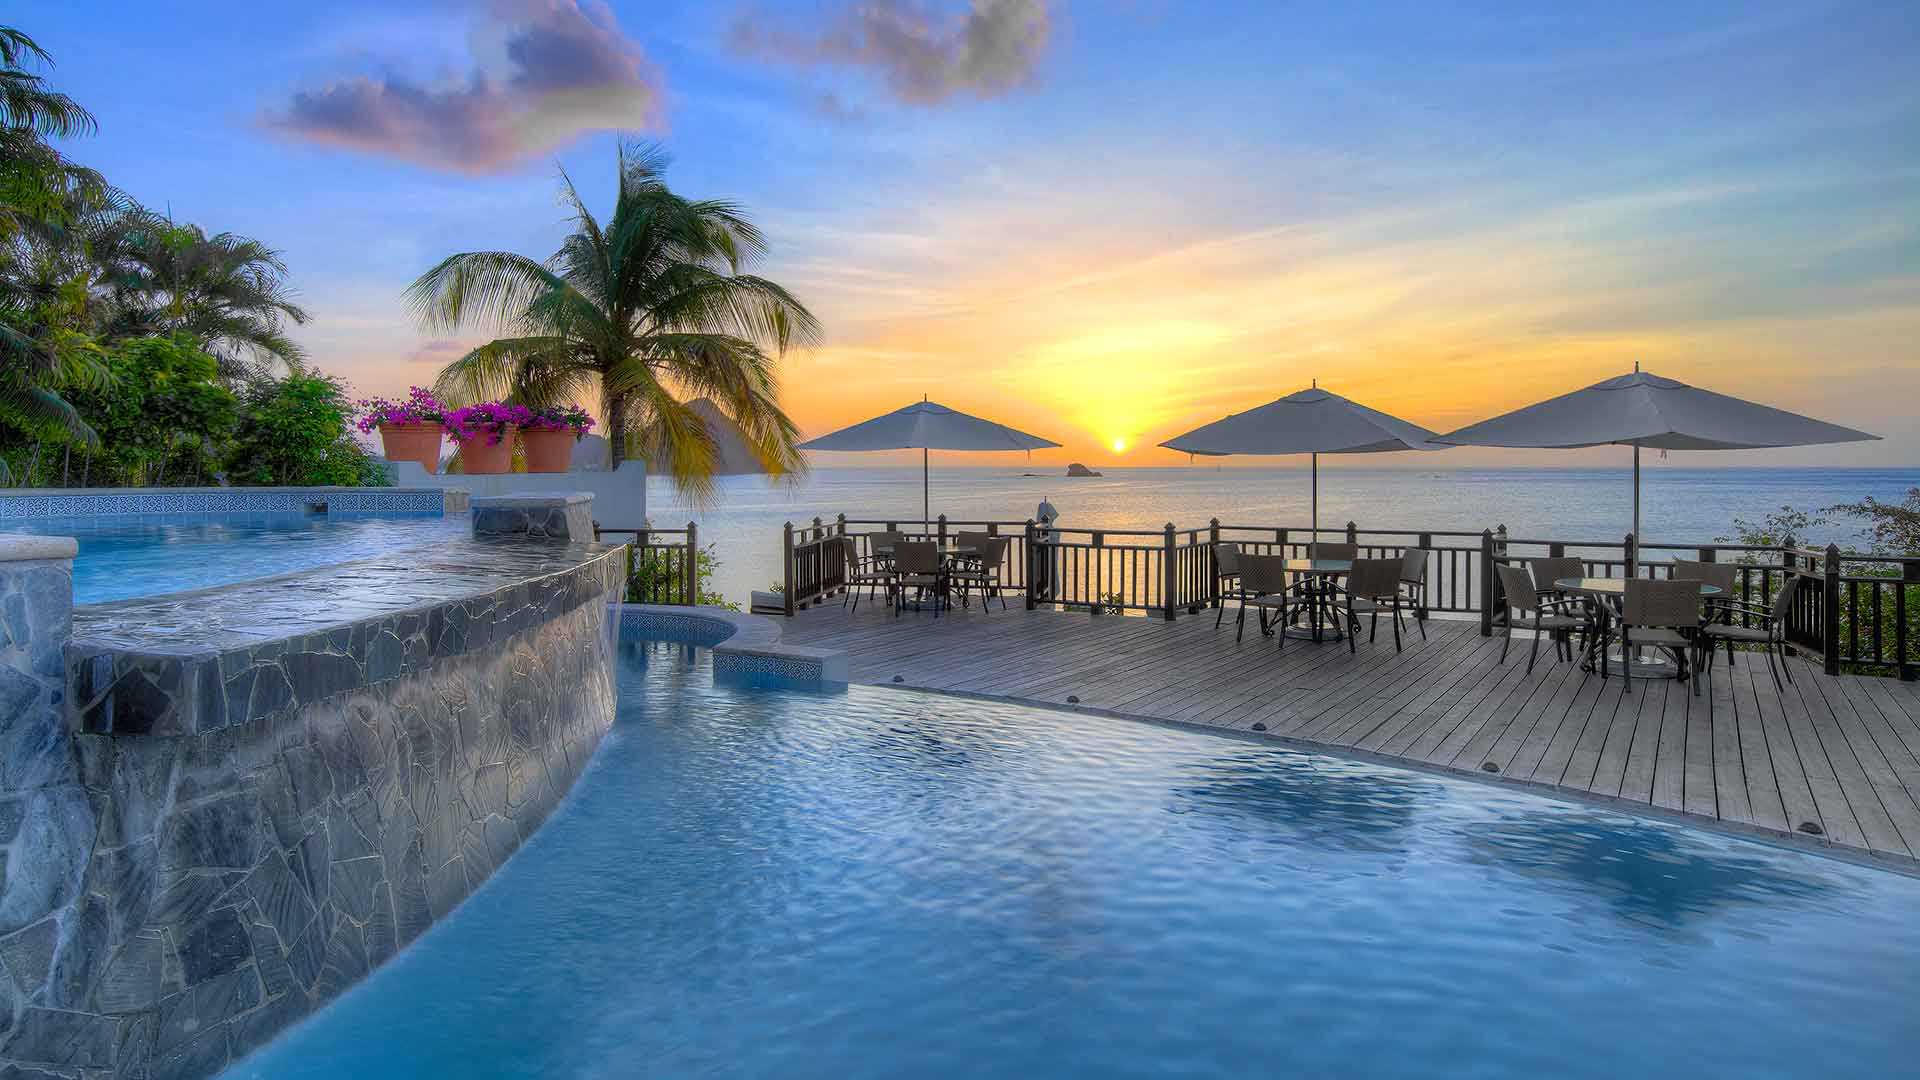 5 best all-inclusive resorts around the world 5 best all-inclusive resorts around the world 5 Best All-Inclusive Resorts Around The World 02 Cap Maison perfect sunsets from Clifftop pool 1